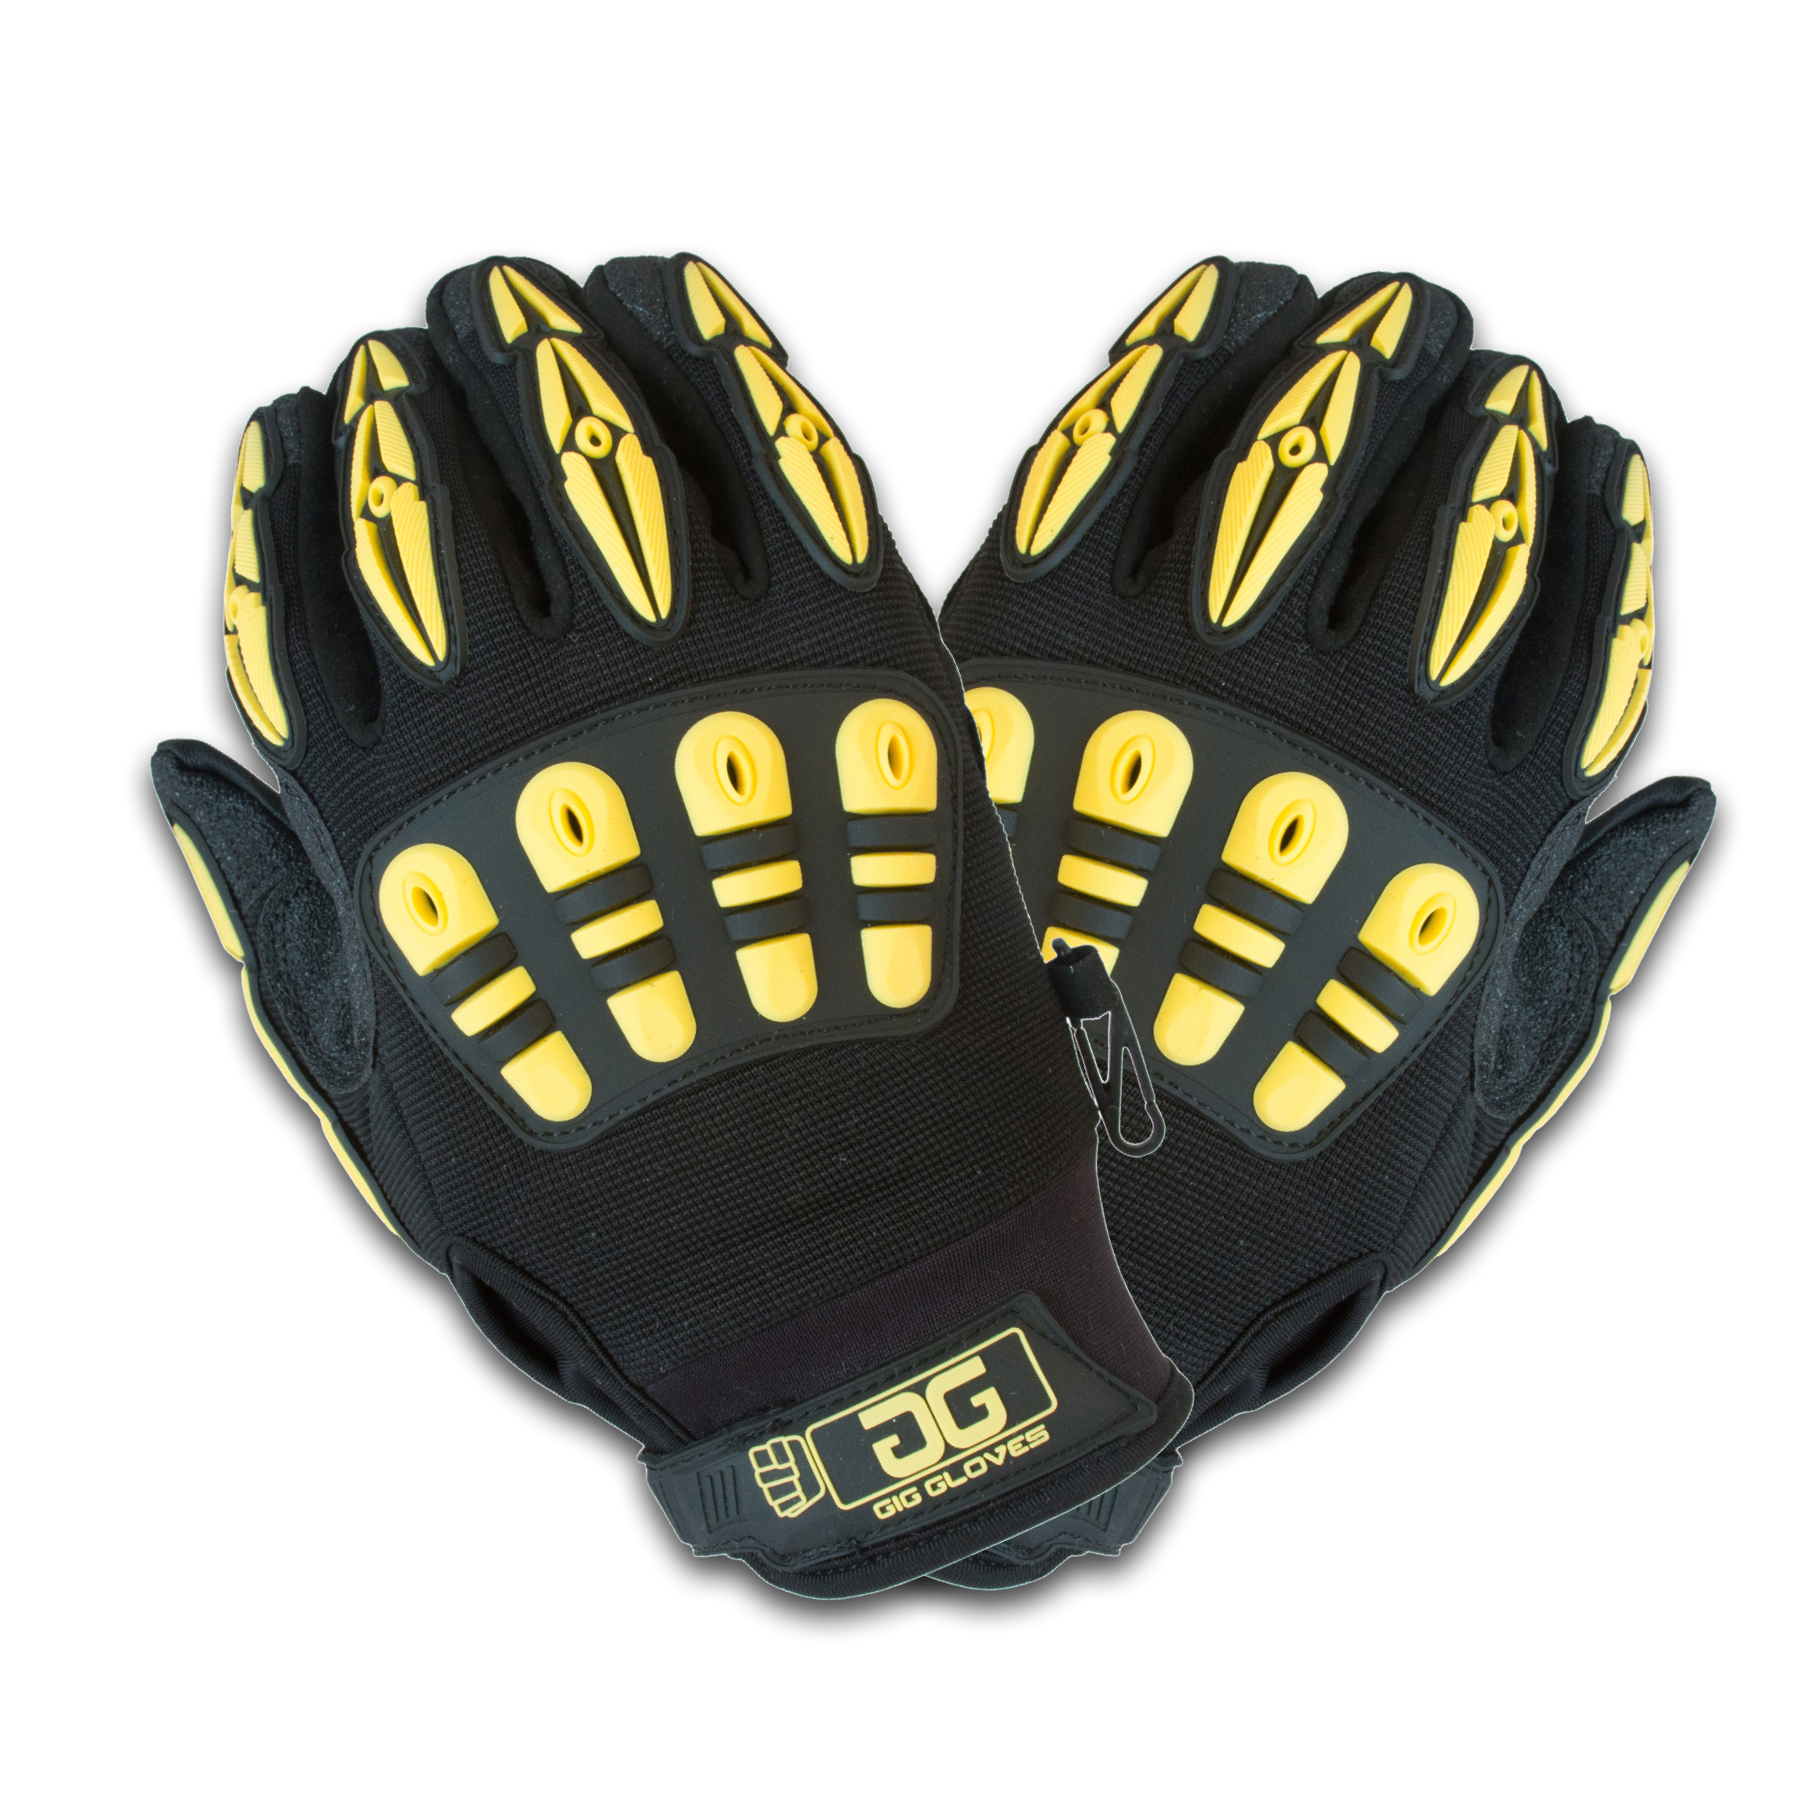 All New Original Gig Gloves v2    For great visibility in low light environments, the Original Gig Gloves are now even better. We've gone ahead and added some all new features that make Gig Gloves even more functional and a better glove for production professionals to be wearing while on the job.  SEE MORE     IN STOCK - ORDER NOW!